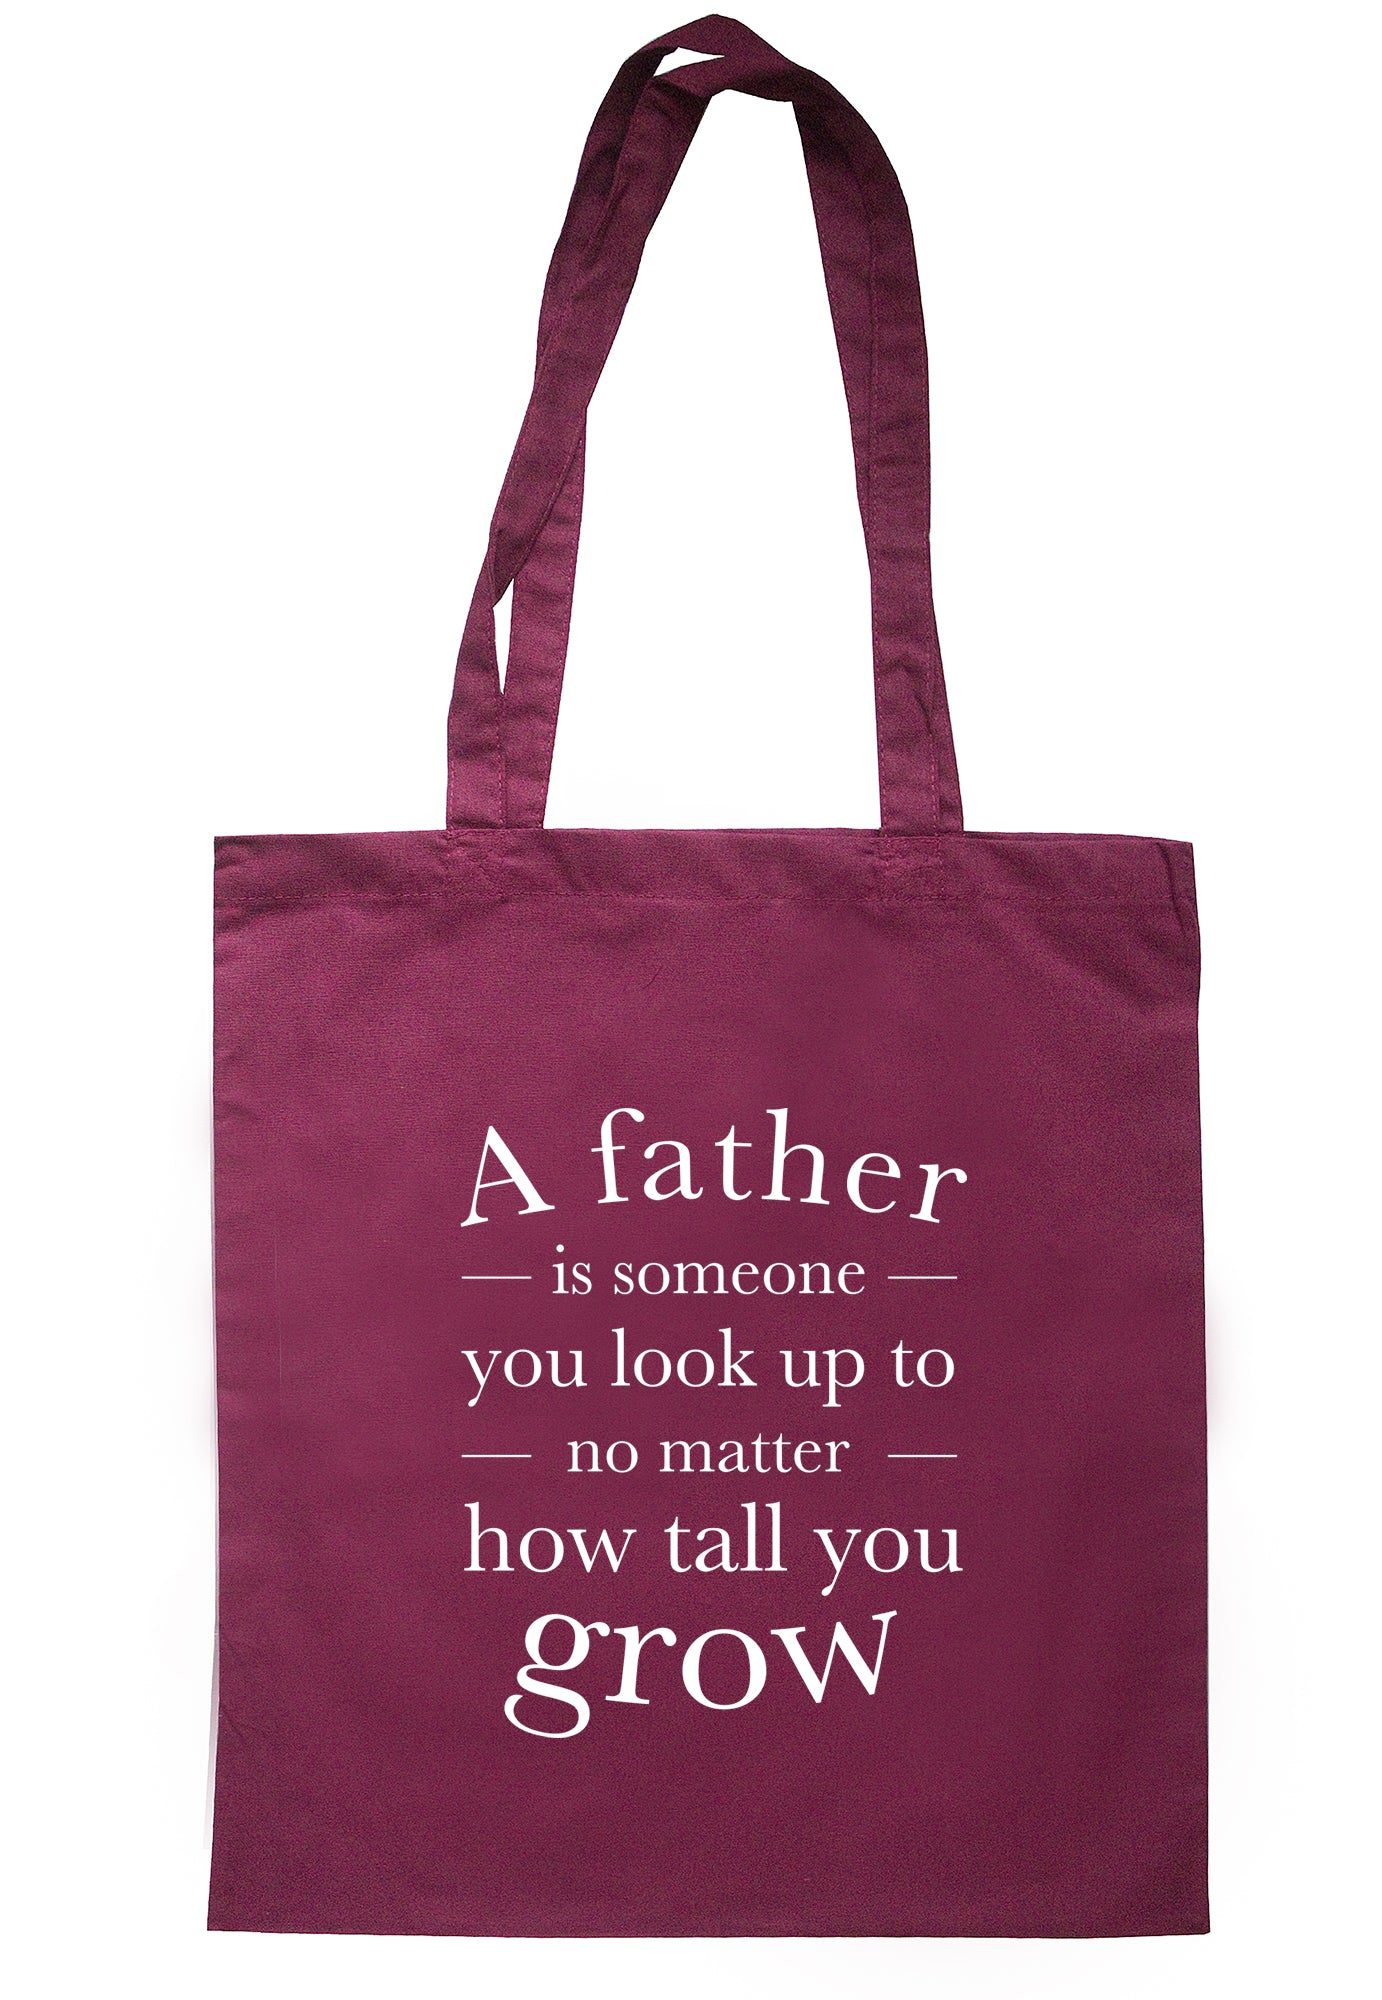 A Father Is Someone You look Up To No Matter How Tall You Grow Tote Bag S0719 - Illustrated Identity Ltd.